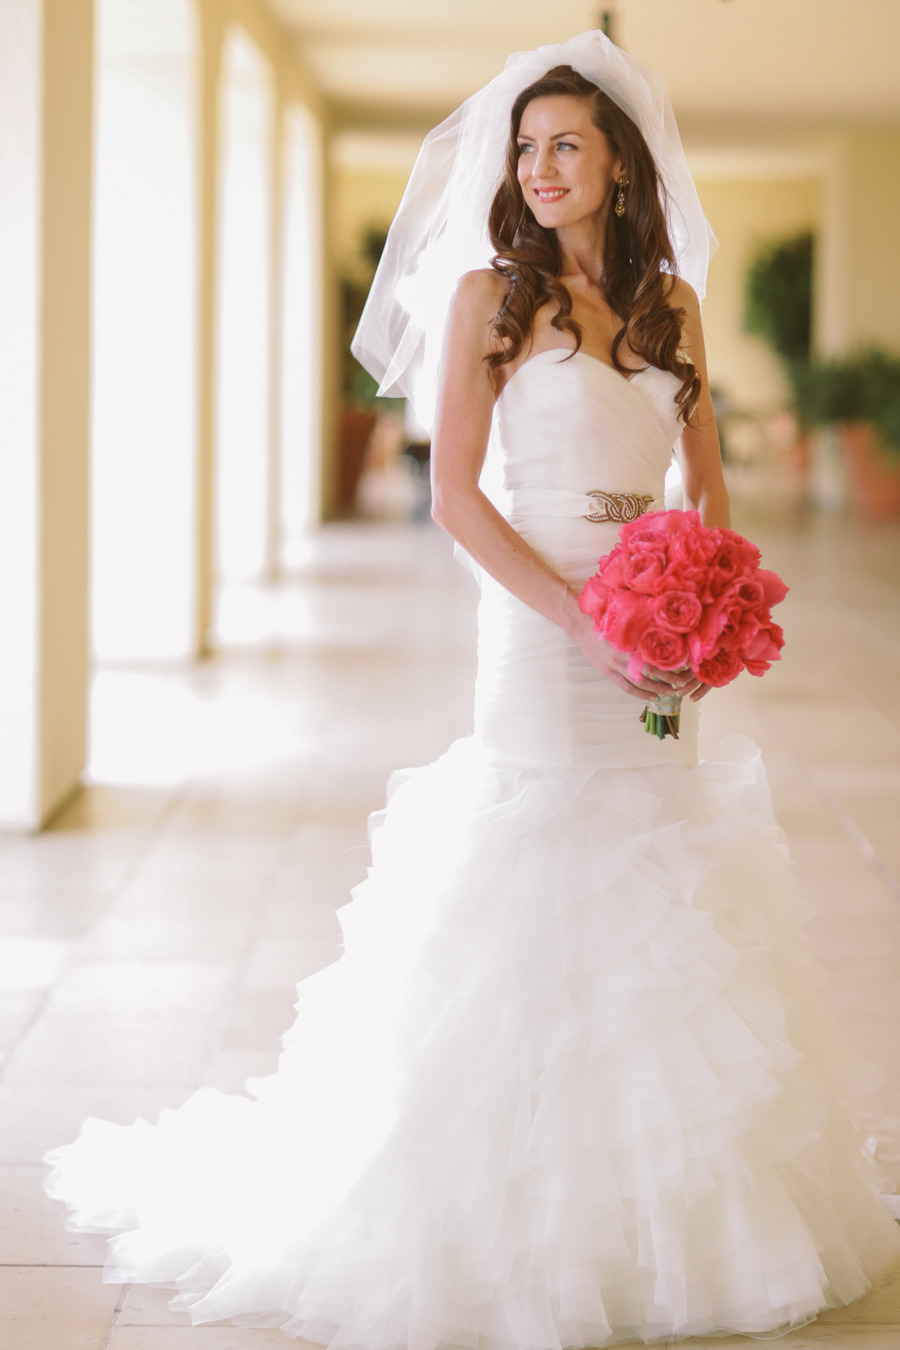 wedding-dress-ideas-12-01022014